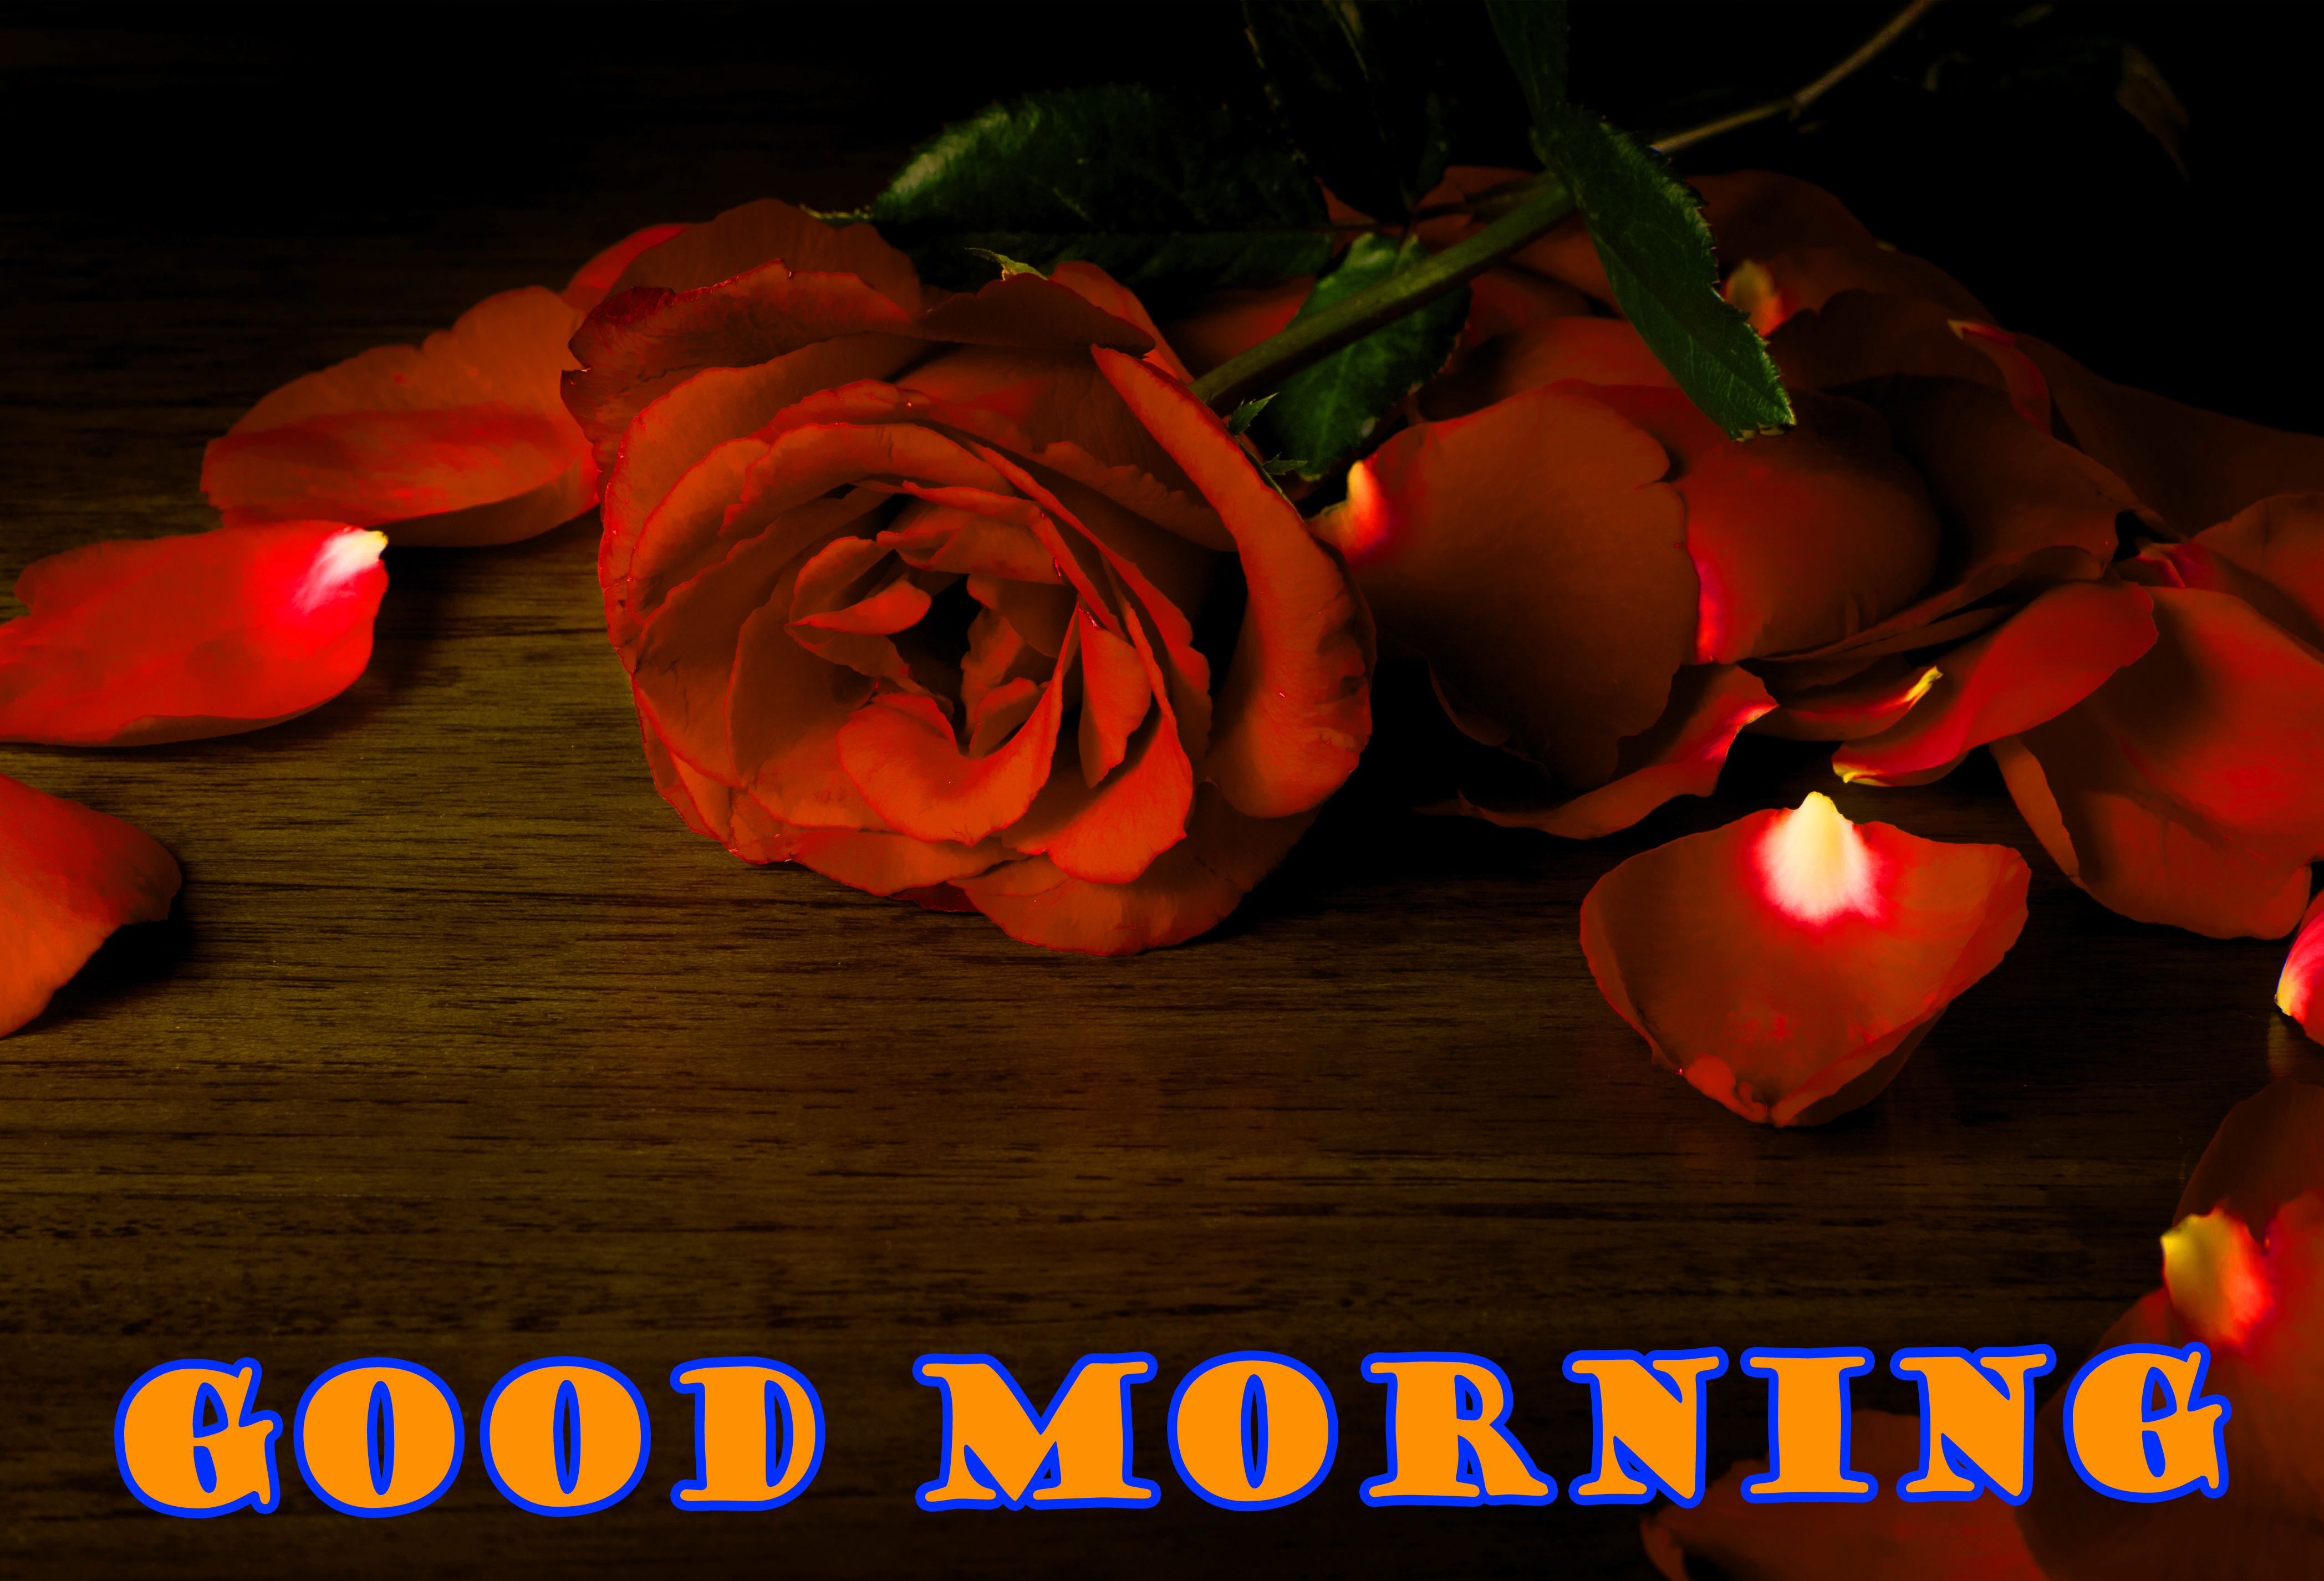 Good Morning Red Rose Photo Images Wallpaper Download